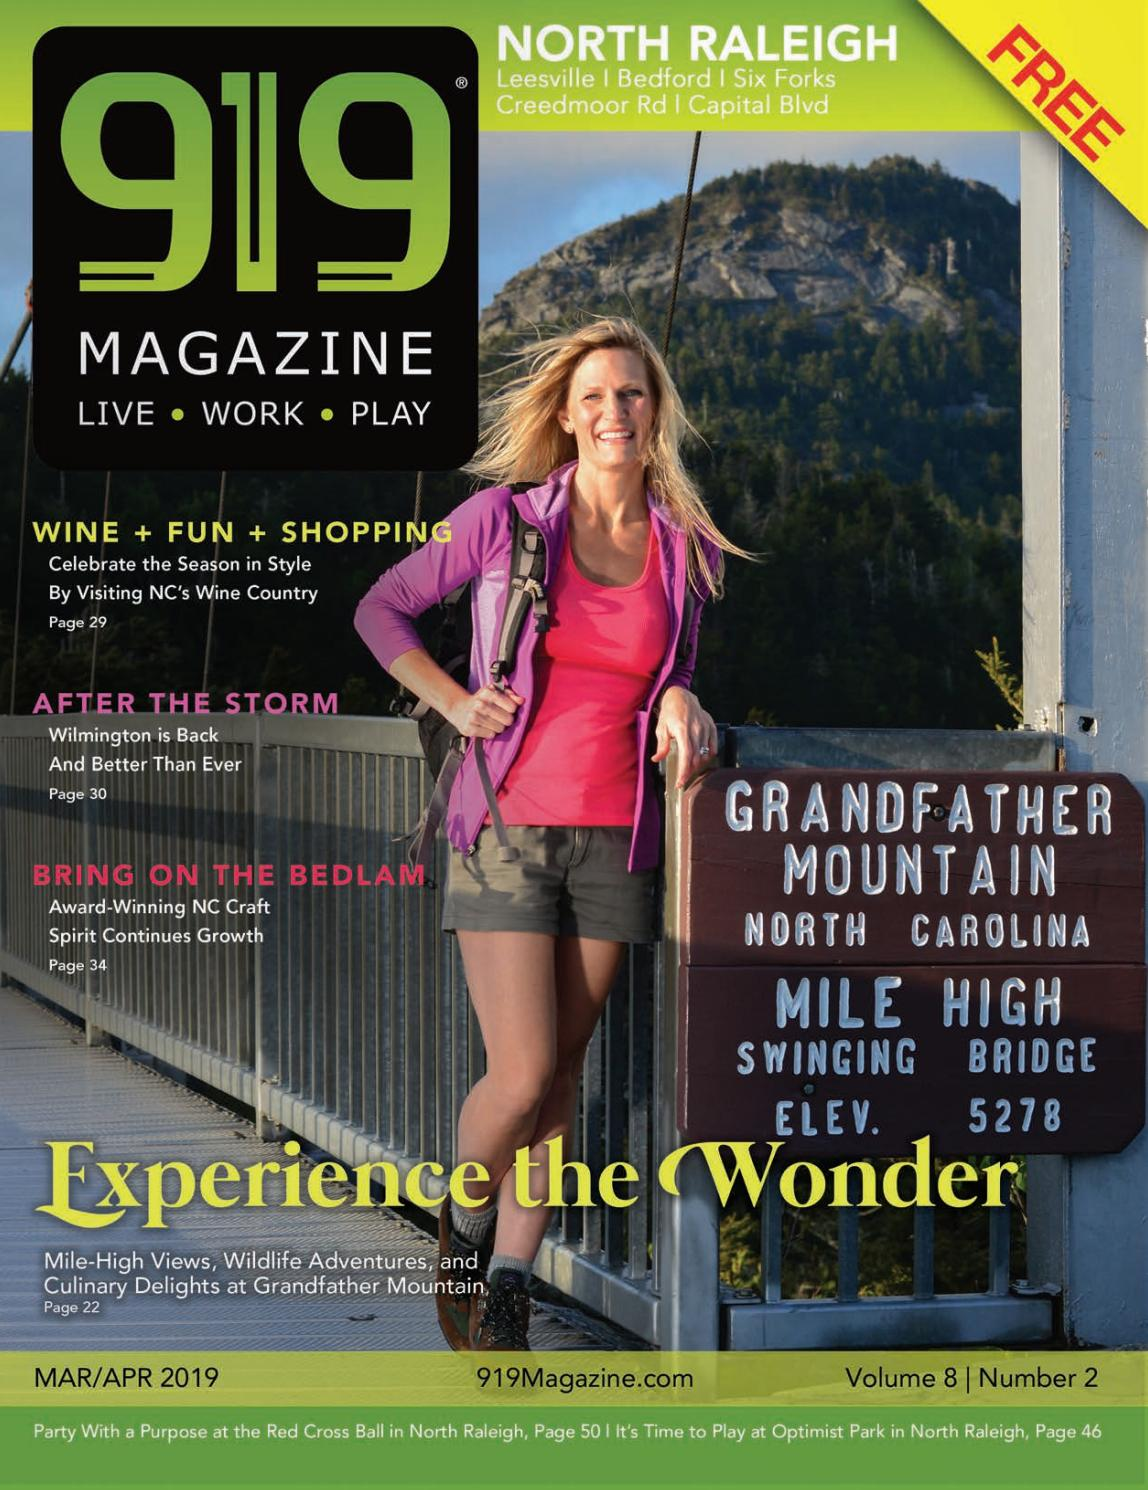 919 Magazine March/April 2019 North Raleigh|Six Forks